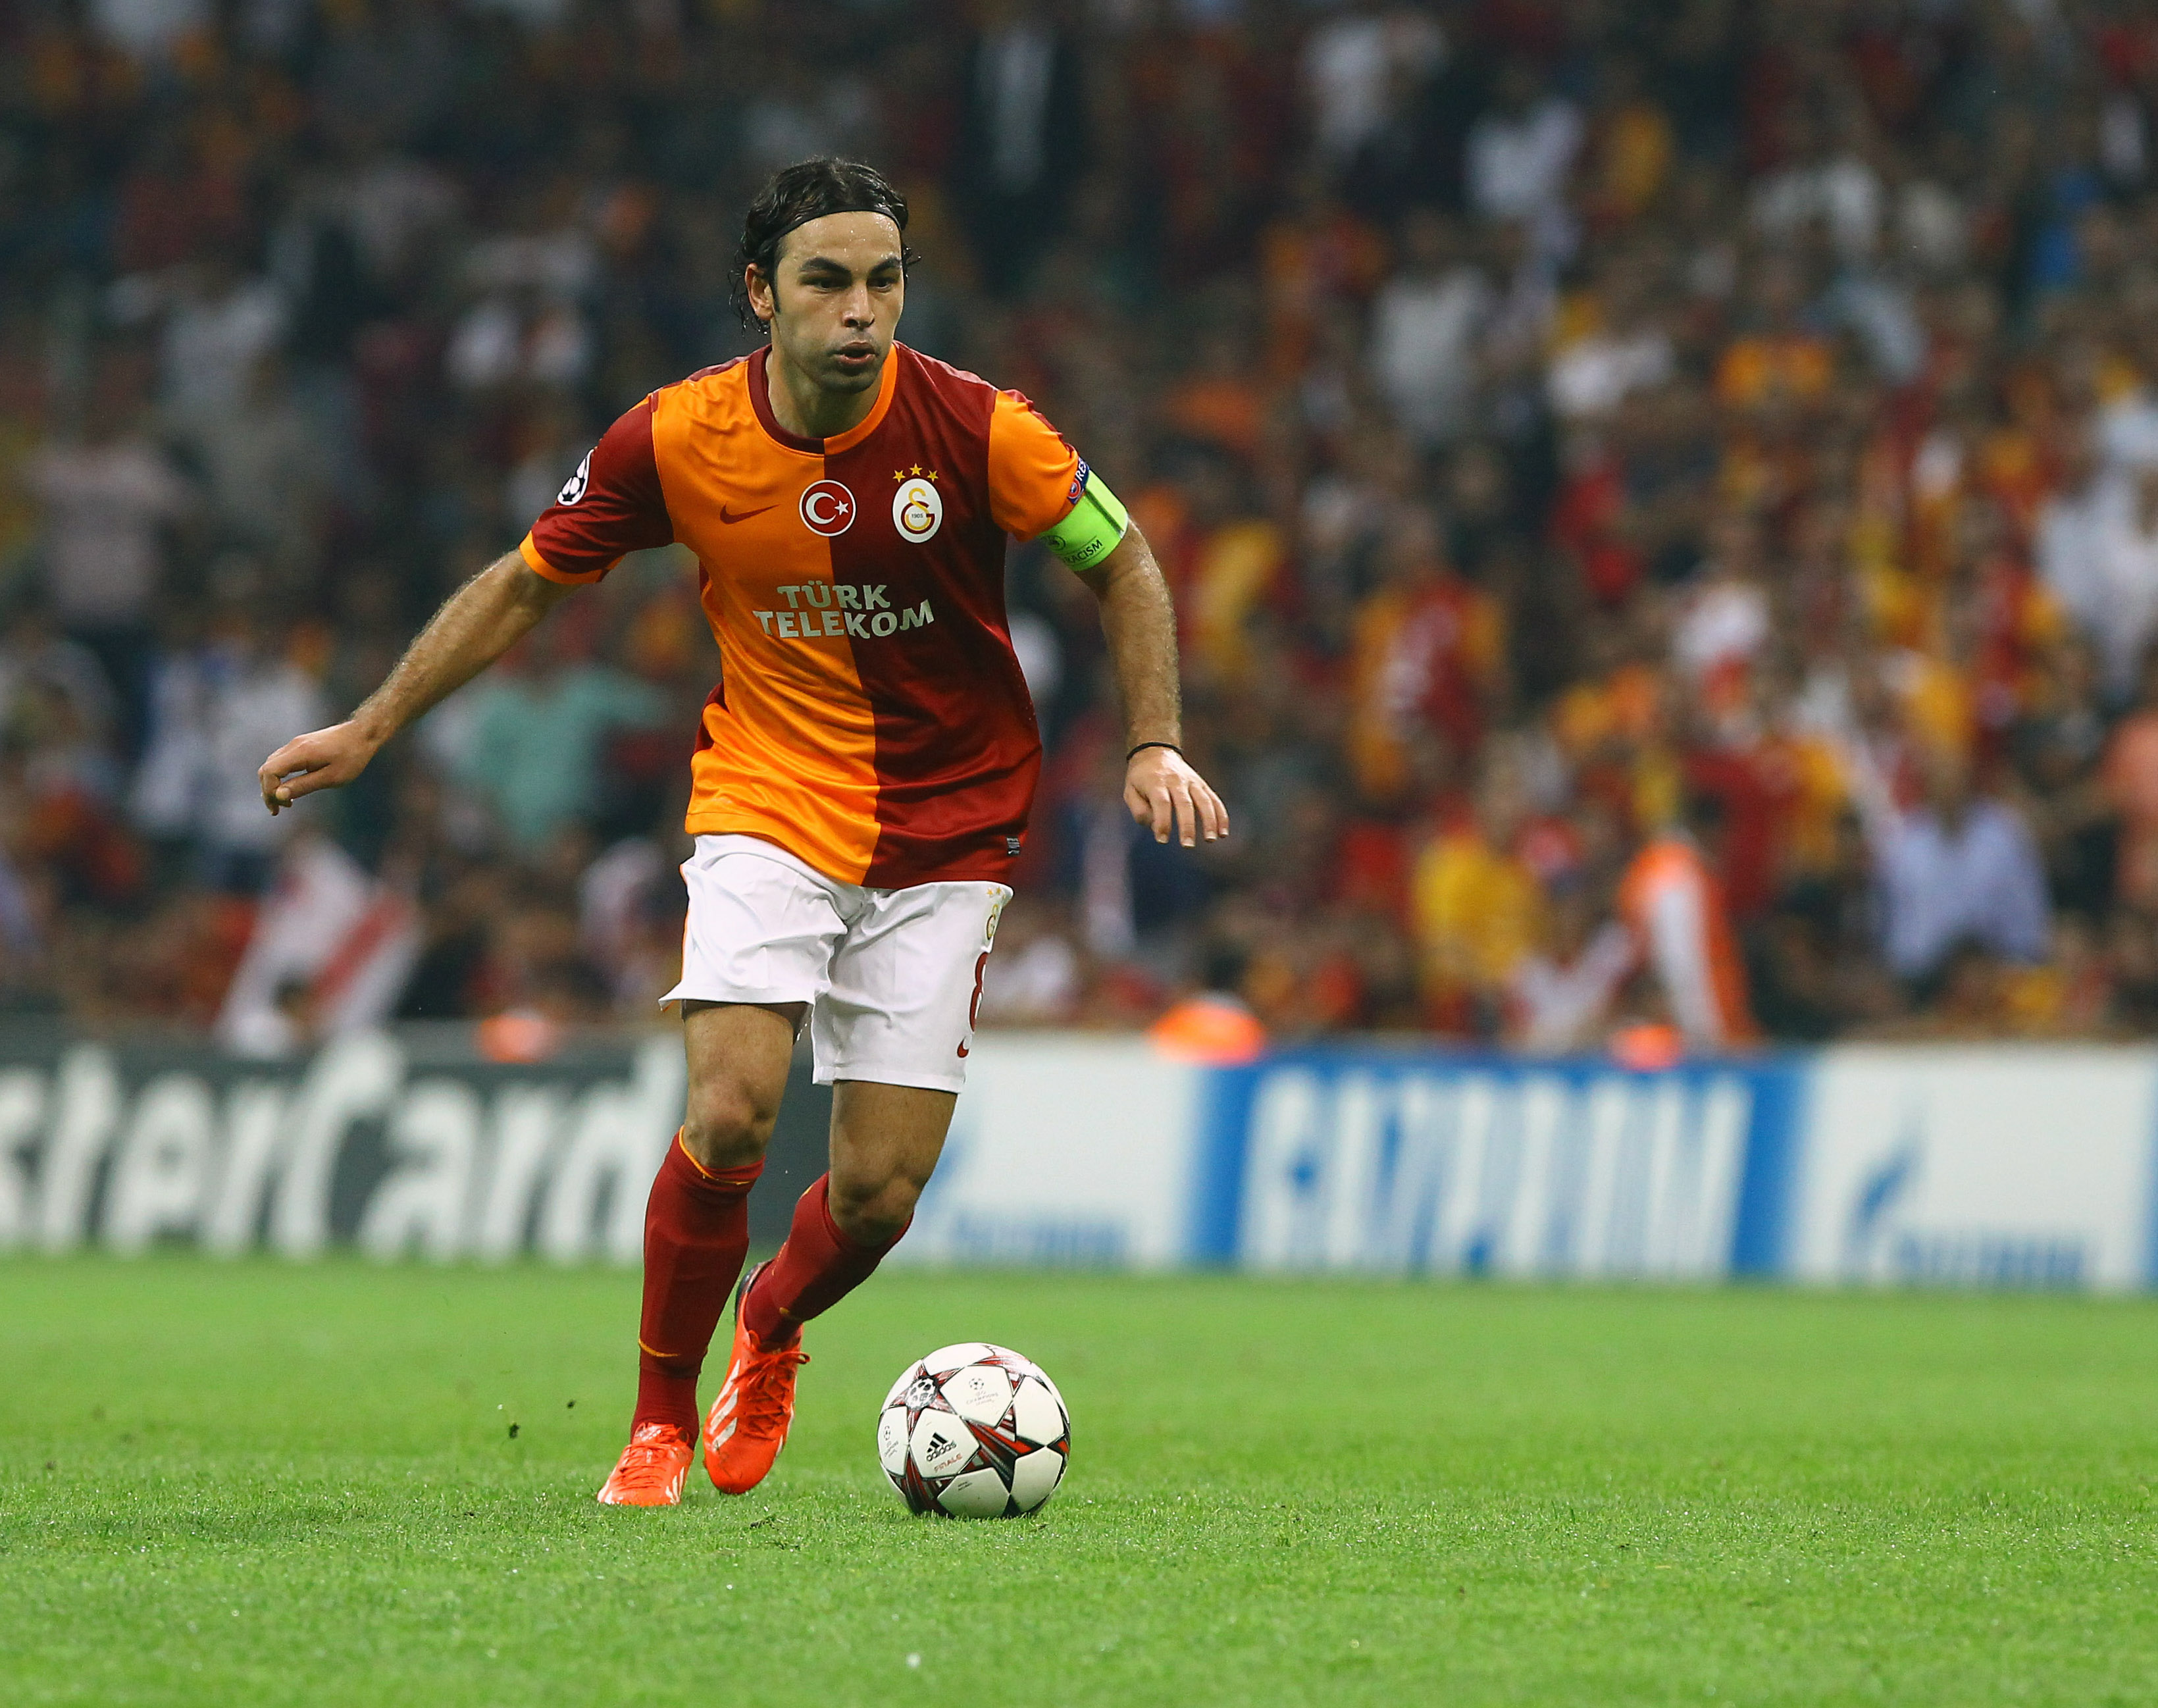 Selcuk Inan to Inter for 7 million?